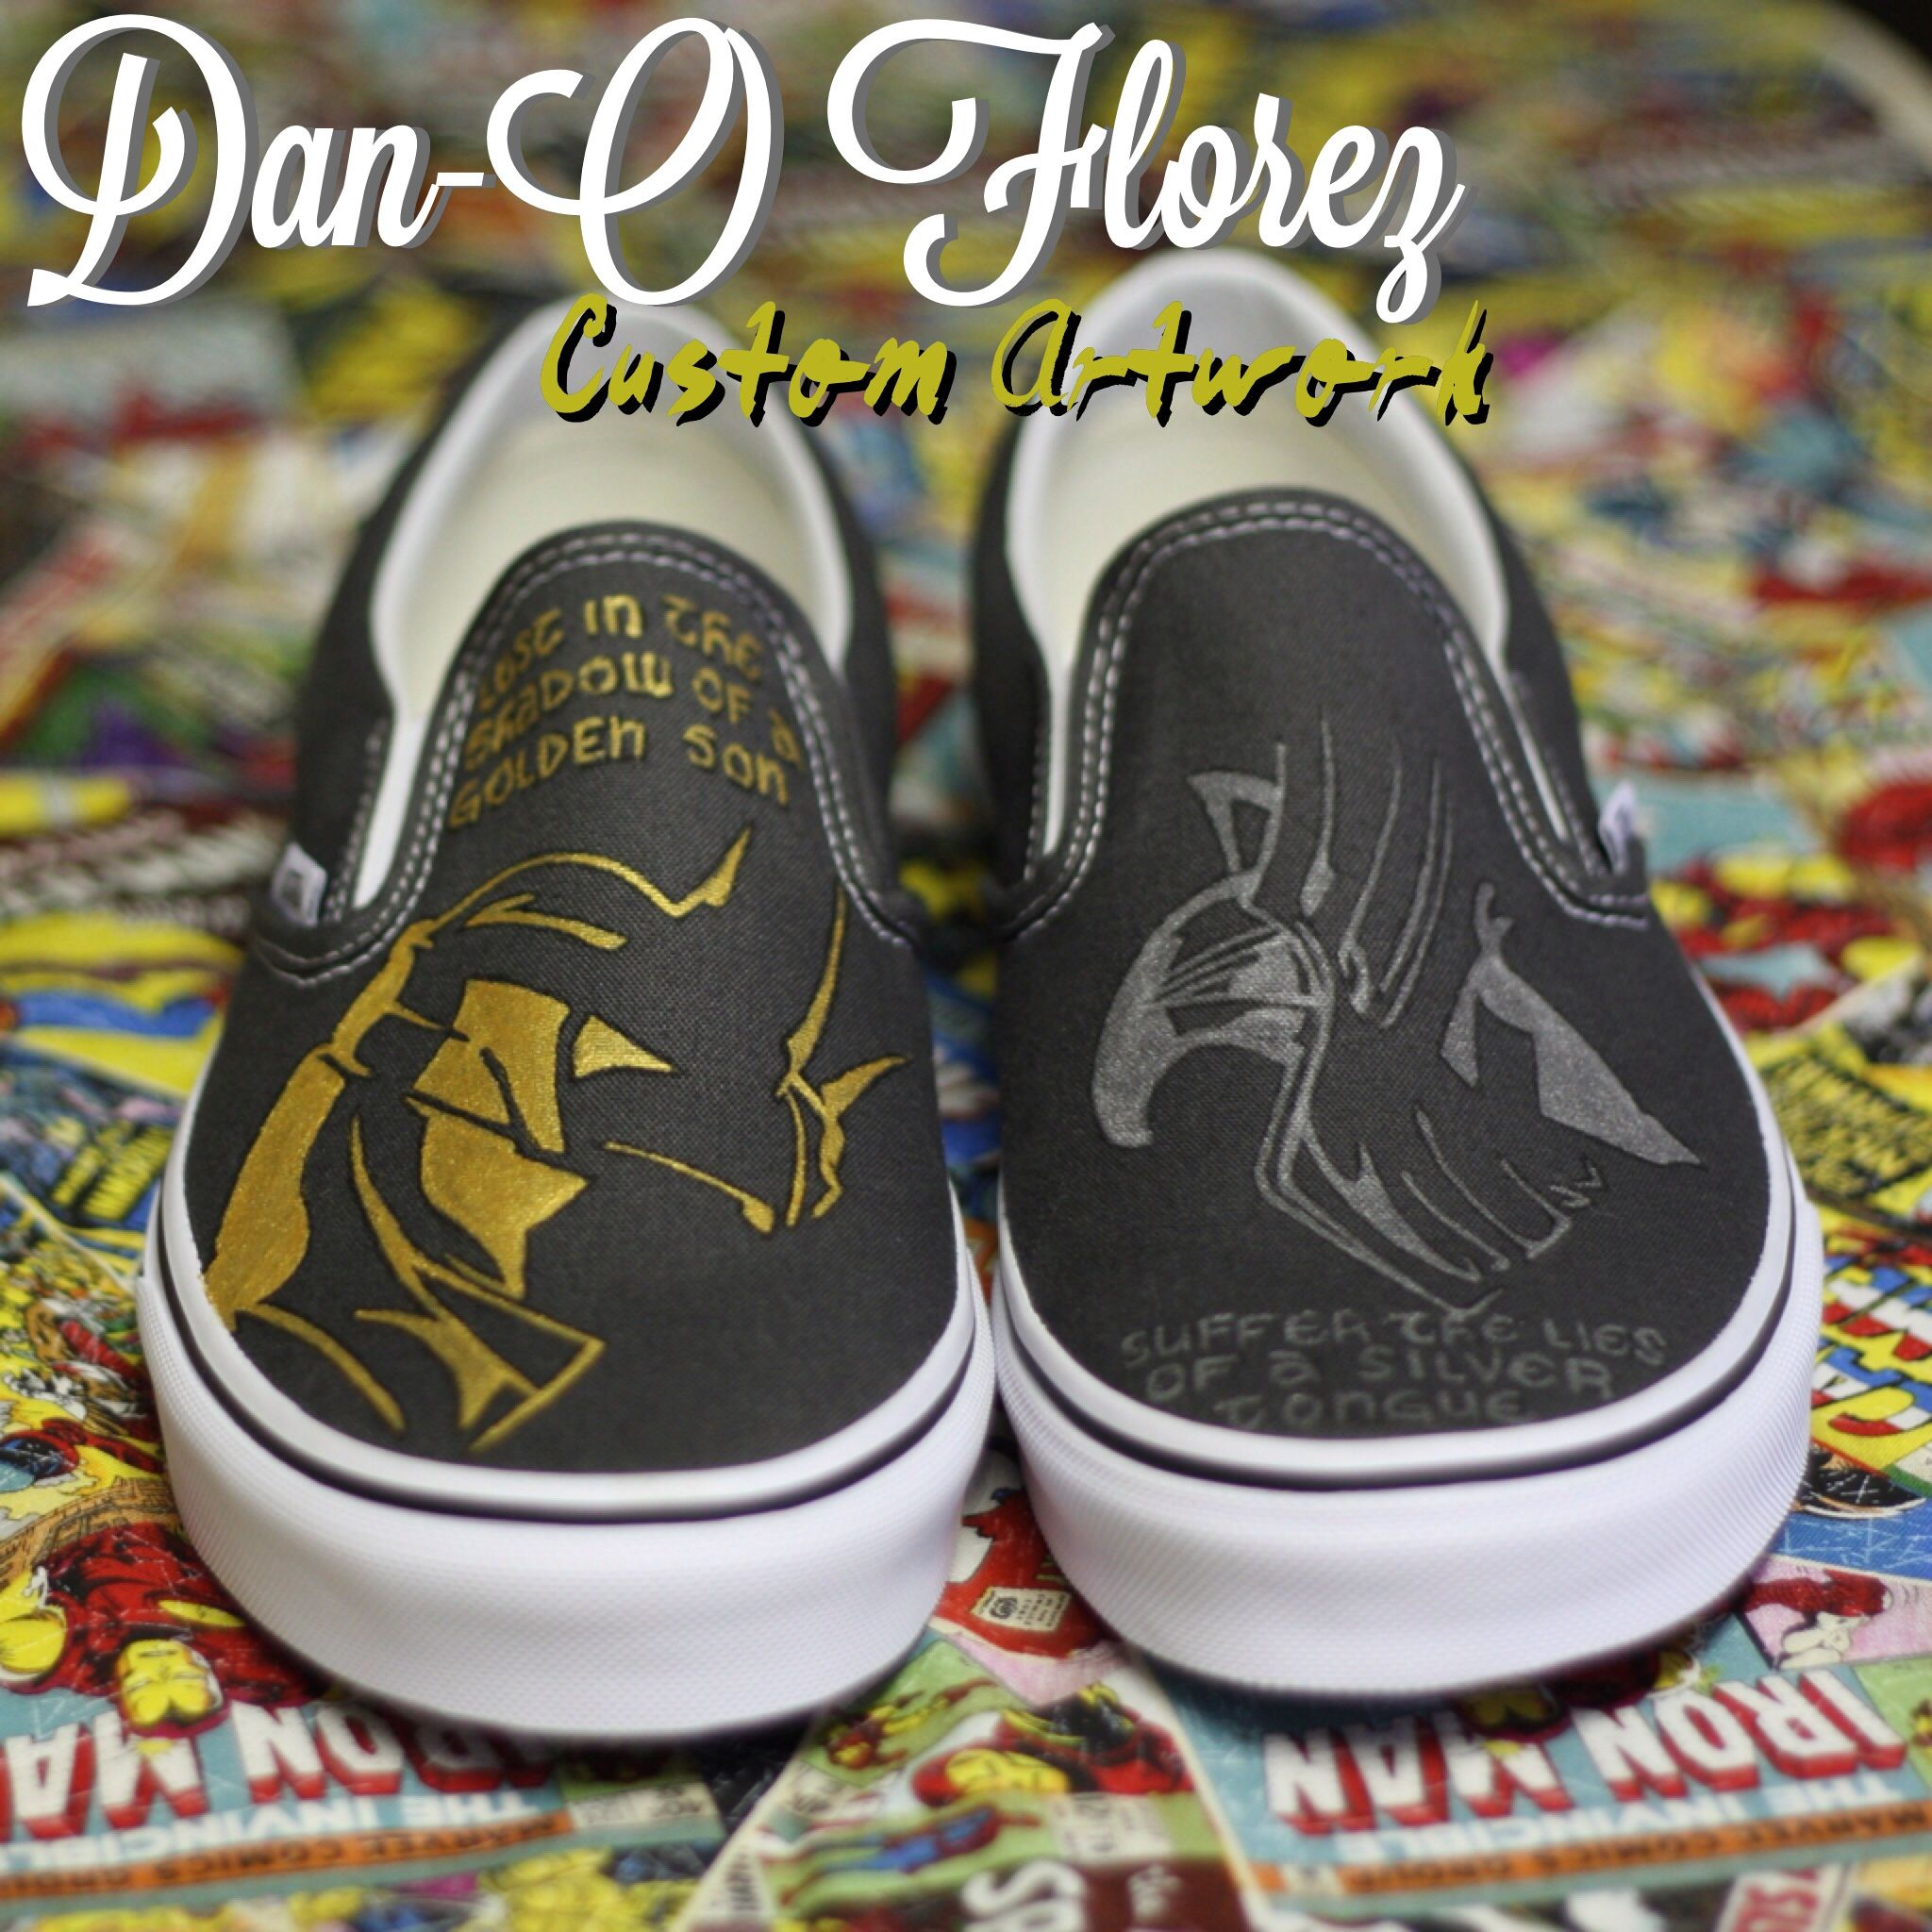 32eaa46e8fd Thor and Loki inspired Artwork VANS slip on SHOES ARE INCLUDED. I have 1  pair of mens size 8 (9.5wm) available to ship right away